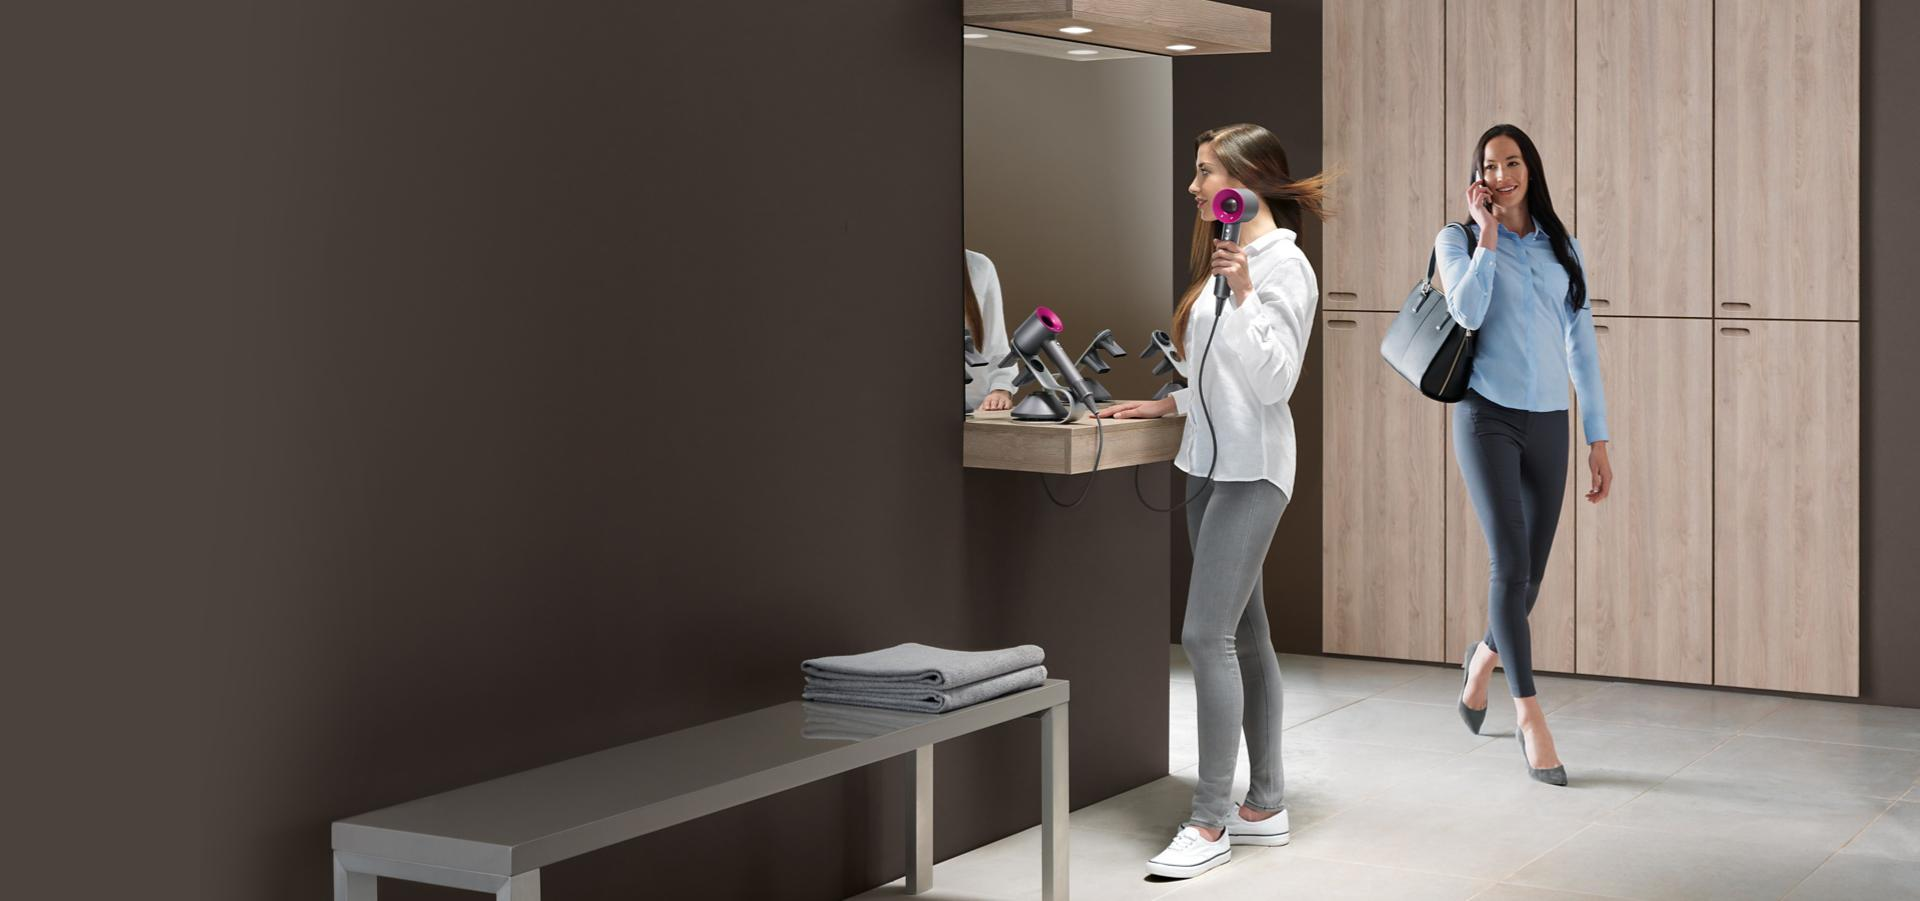 Two women in a changing room. One using Dyson Supersonic.